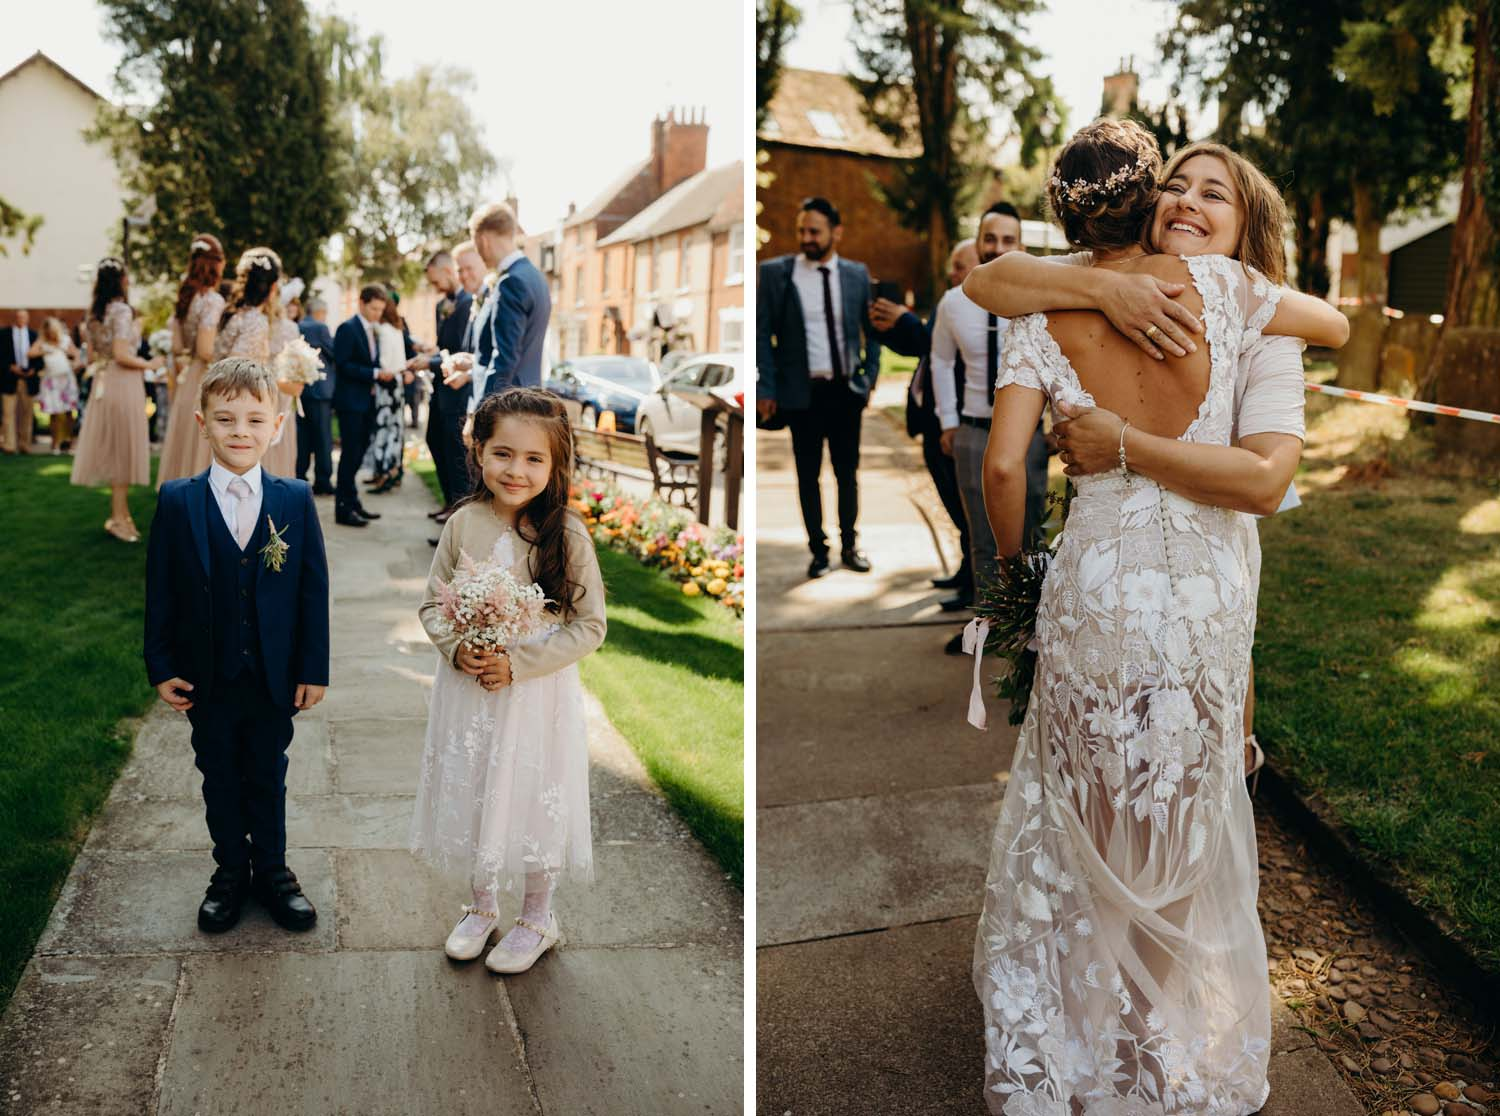 Flower girl and Page boy at wedding